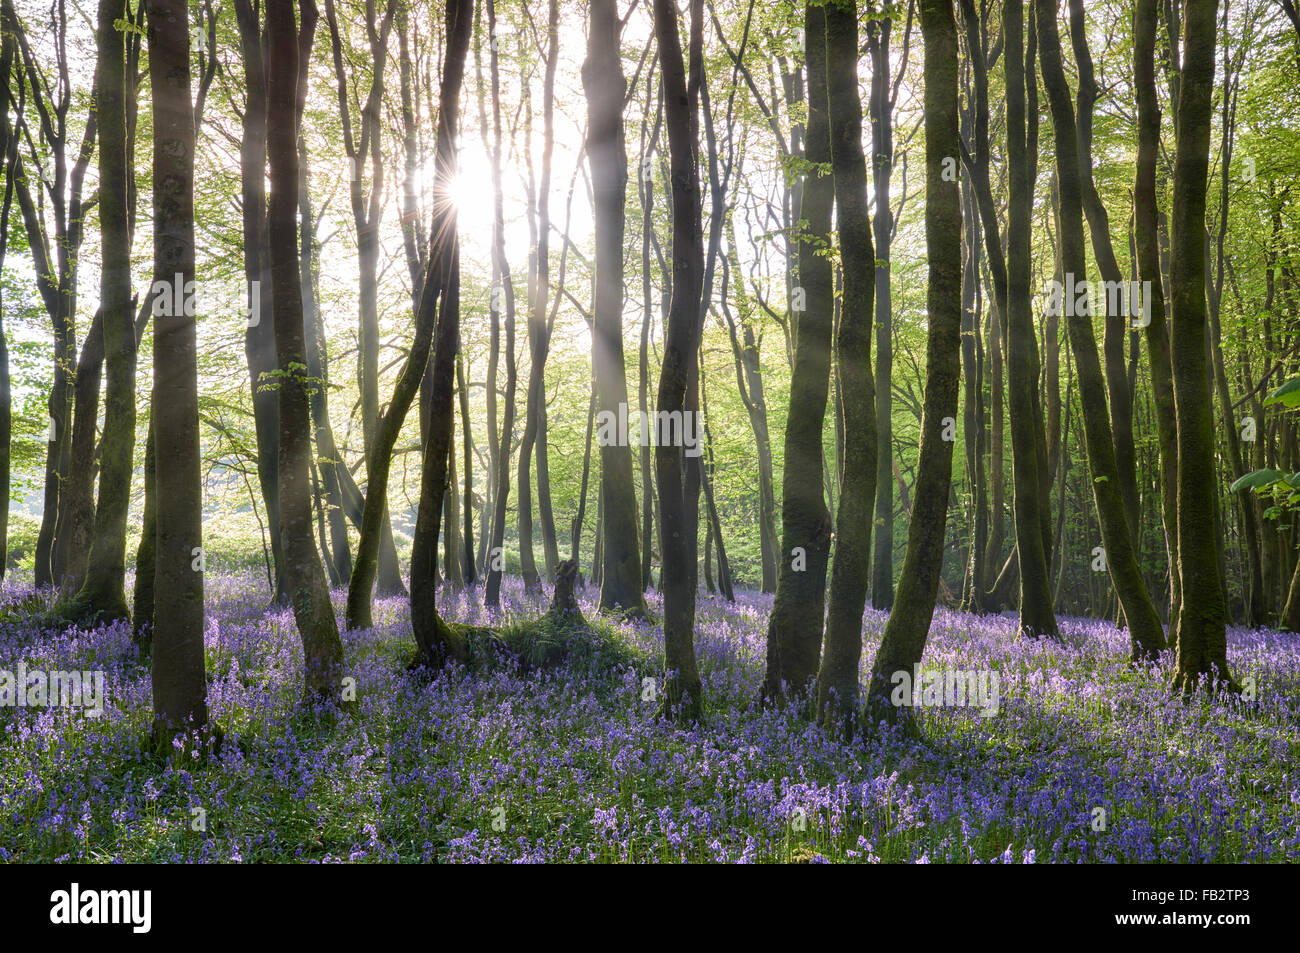 Sunlight shining between the trees and lighting up the bluebells on the woodland floor. - Stock Image